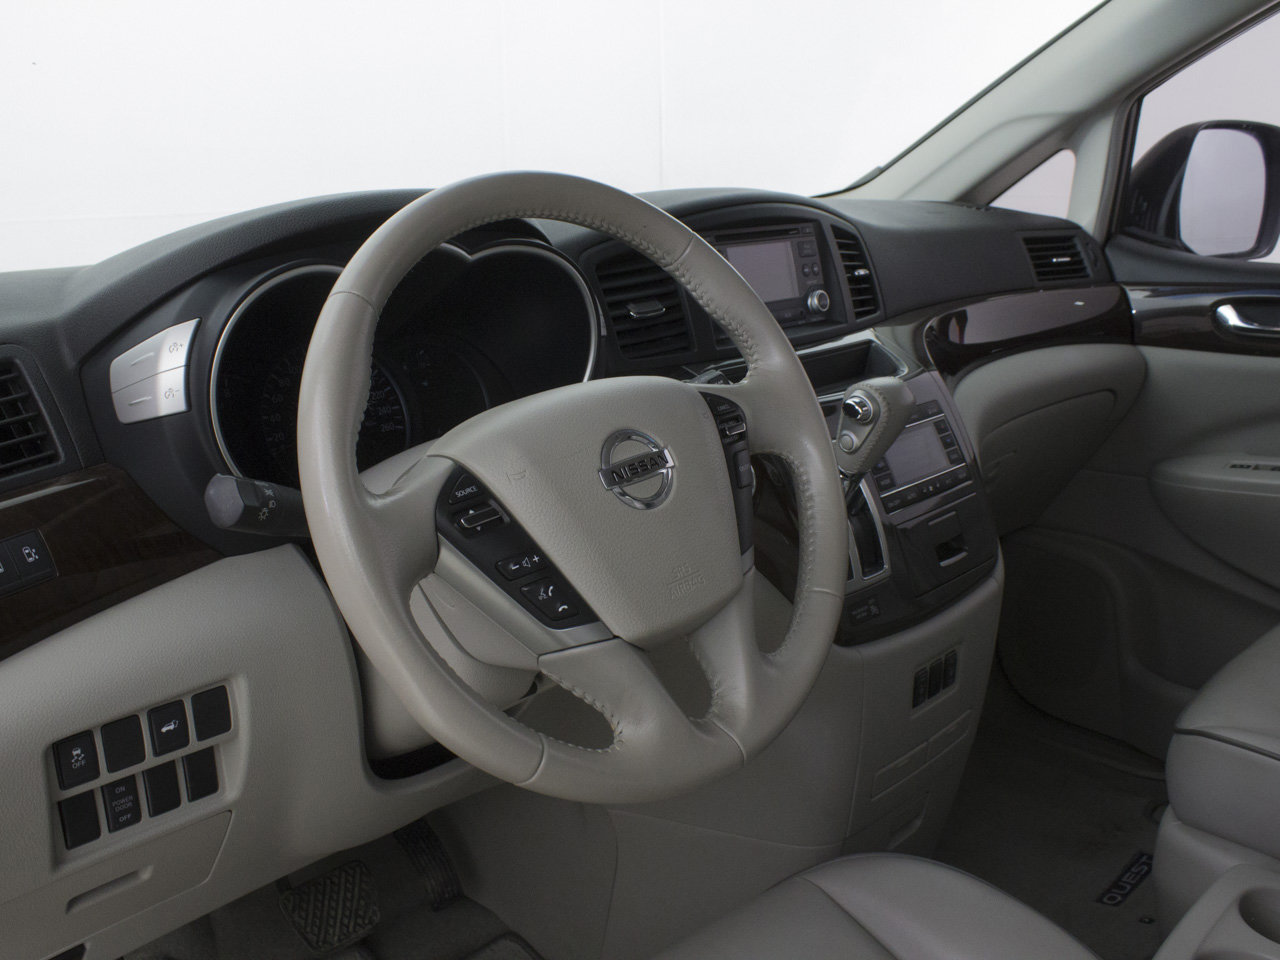 Nissan quest for sale in the greater toronto area JPG 1280x960 2011 nissan  quest radios